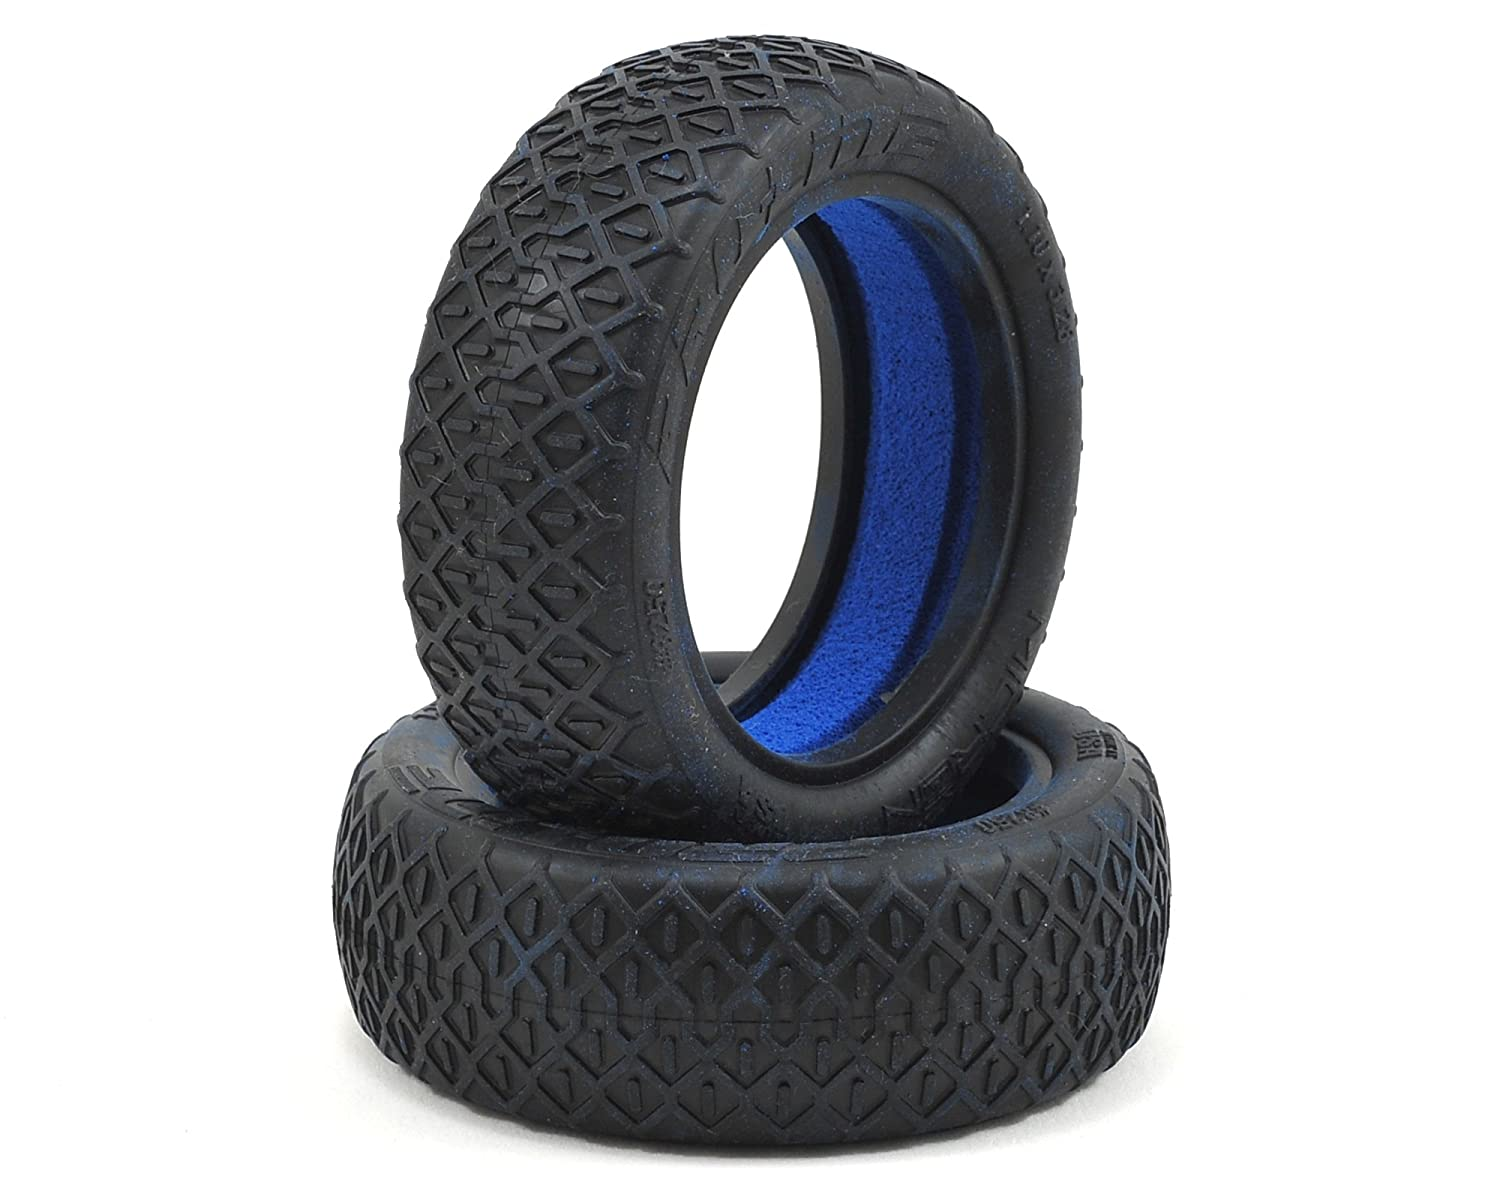 1/10 Front Micron 2.2 2WD MC Tyres with Closed Cell Foam inserts: Off-Road Buggy (2) B019ECIRSQ